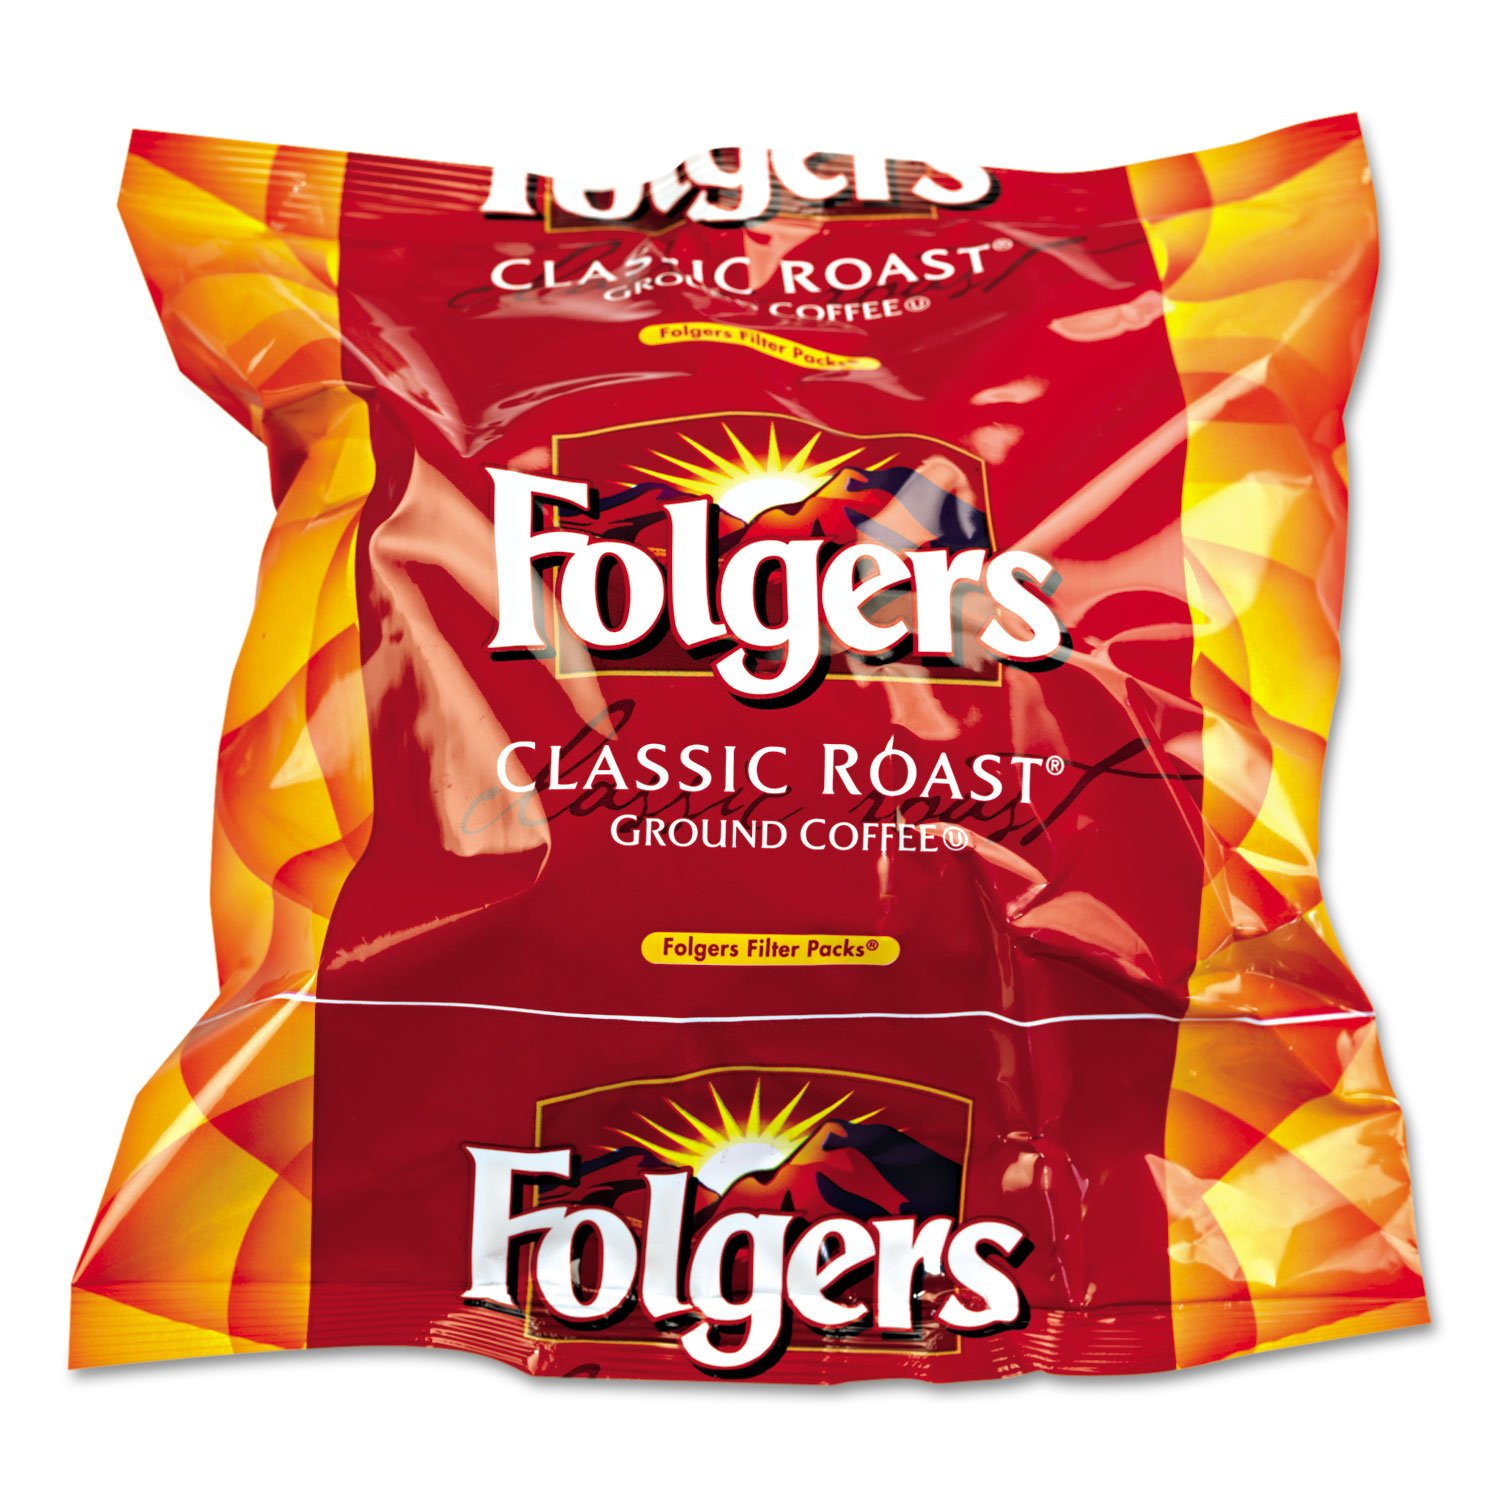 FOL06114 - Folgers Regular Coffee Filter Pack, .9 Ounce by Folgers